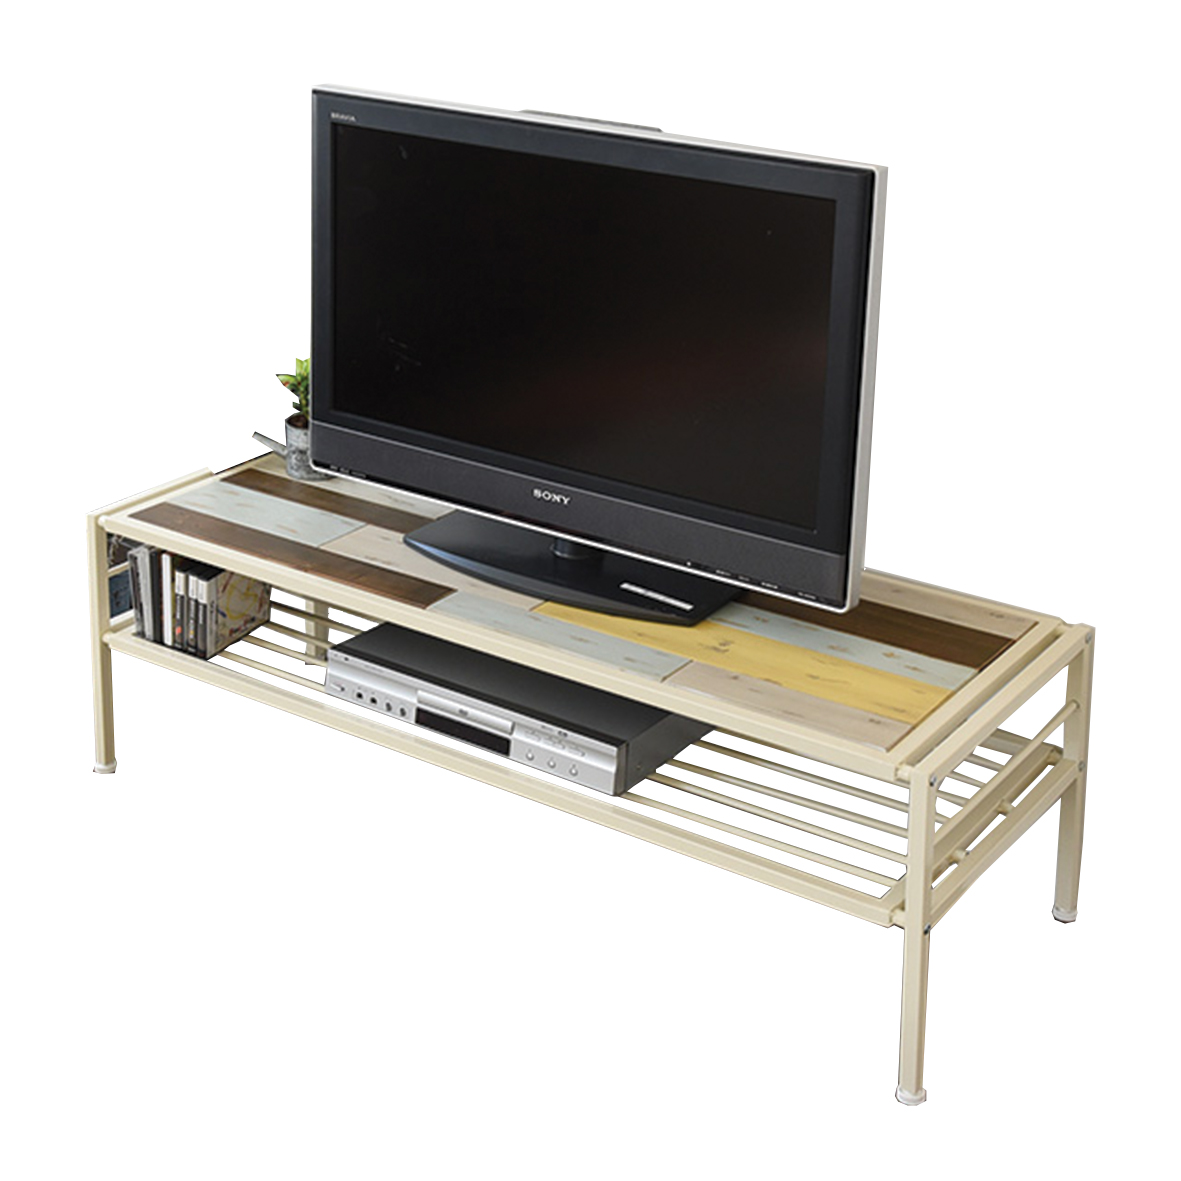 florence-tv-stand-model-kfp-ftvs